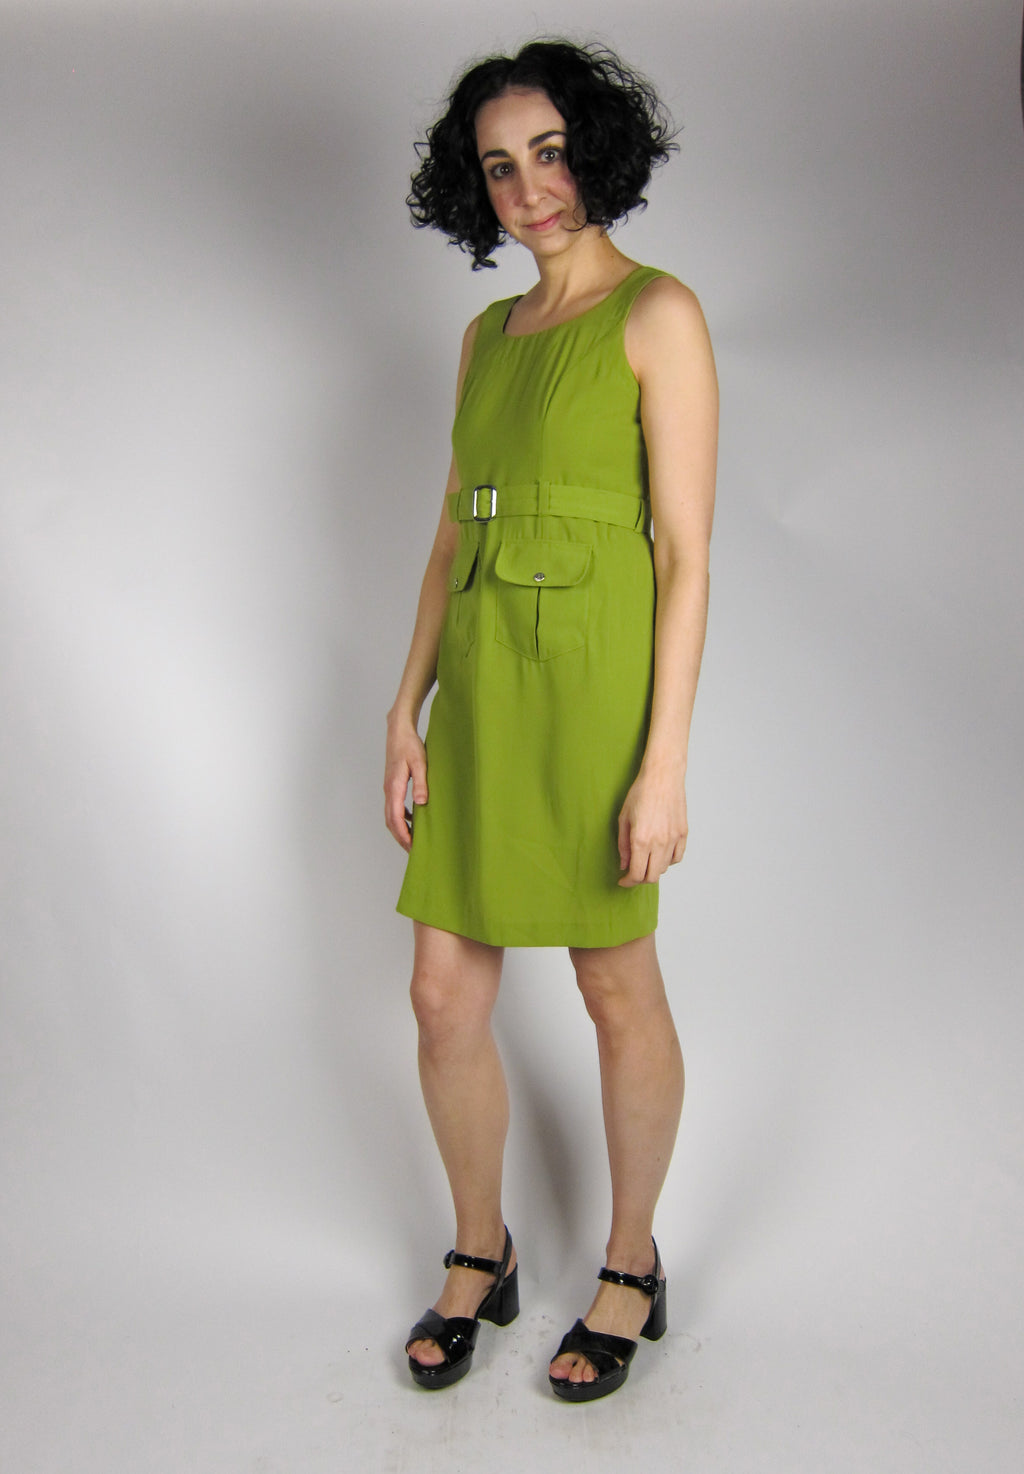 Vintage Chartreuse Green Dress